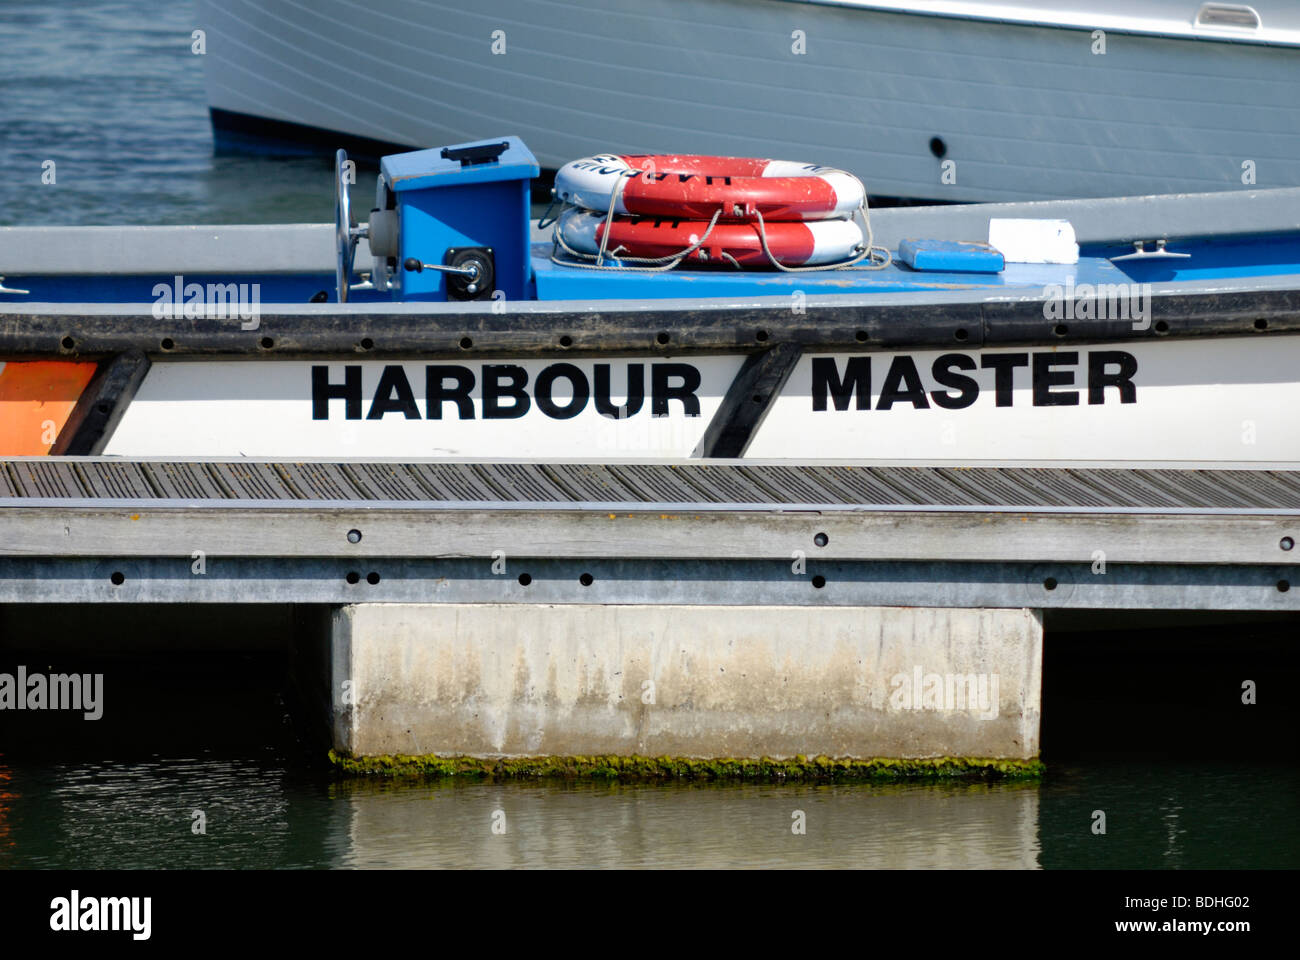 Close up  of a Harbour Masters boat - Stock Image